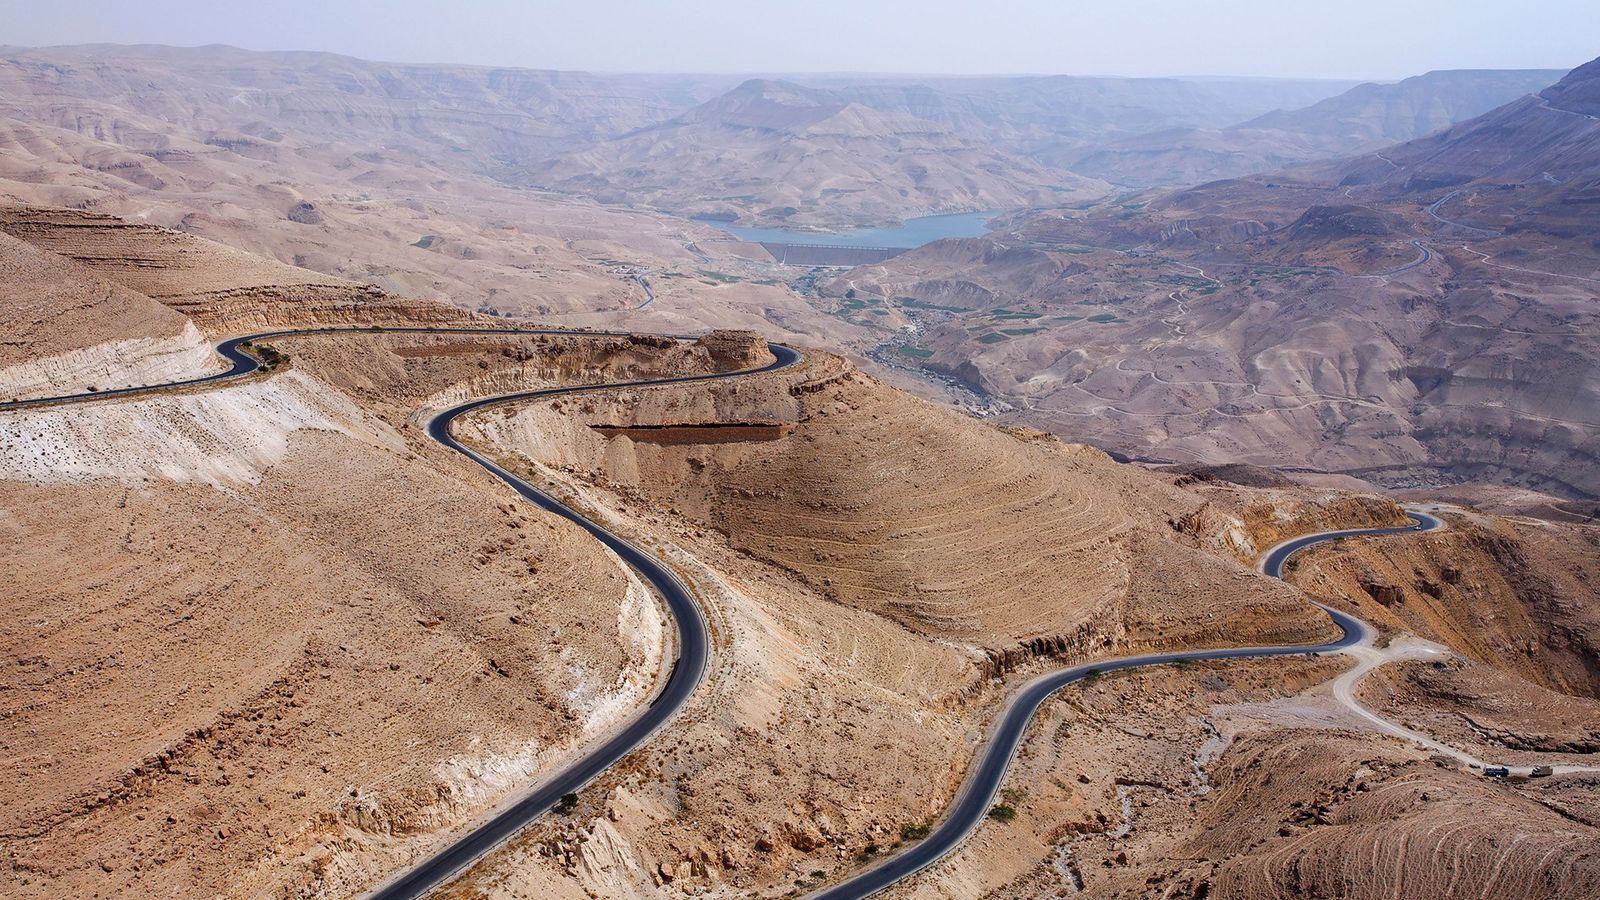 The King's Highway was one of the great trade routes of the Middle East during biblical ...